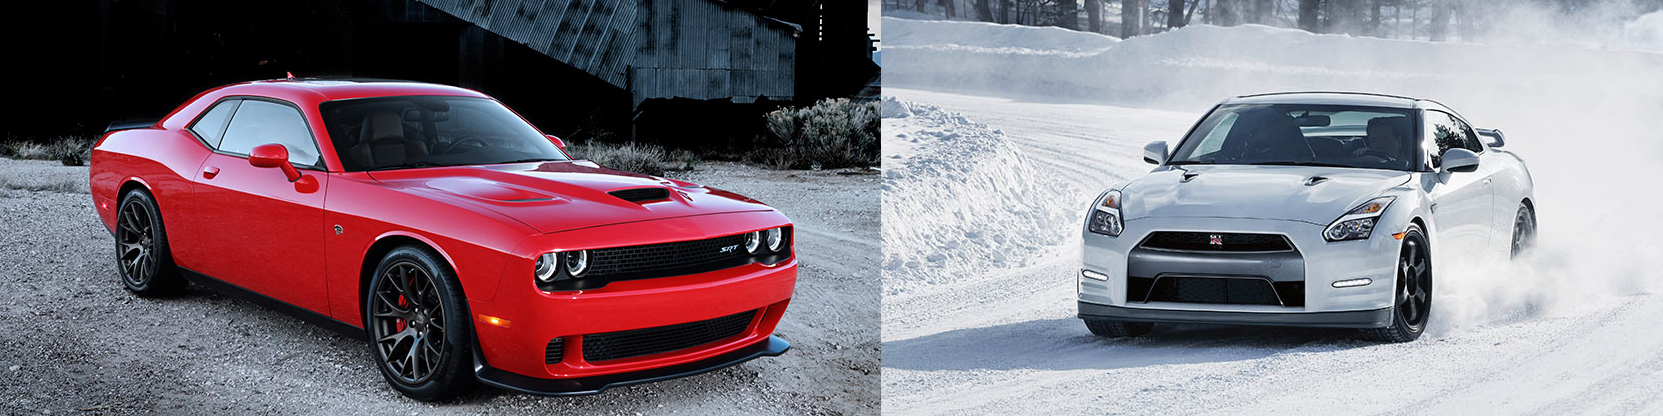 Choose Your Dream Car Dodge Challenger Srt Hellcat Vs